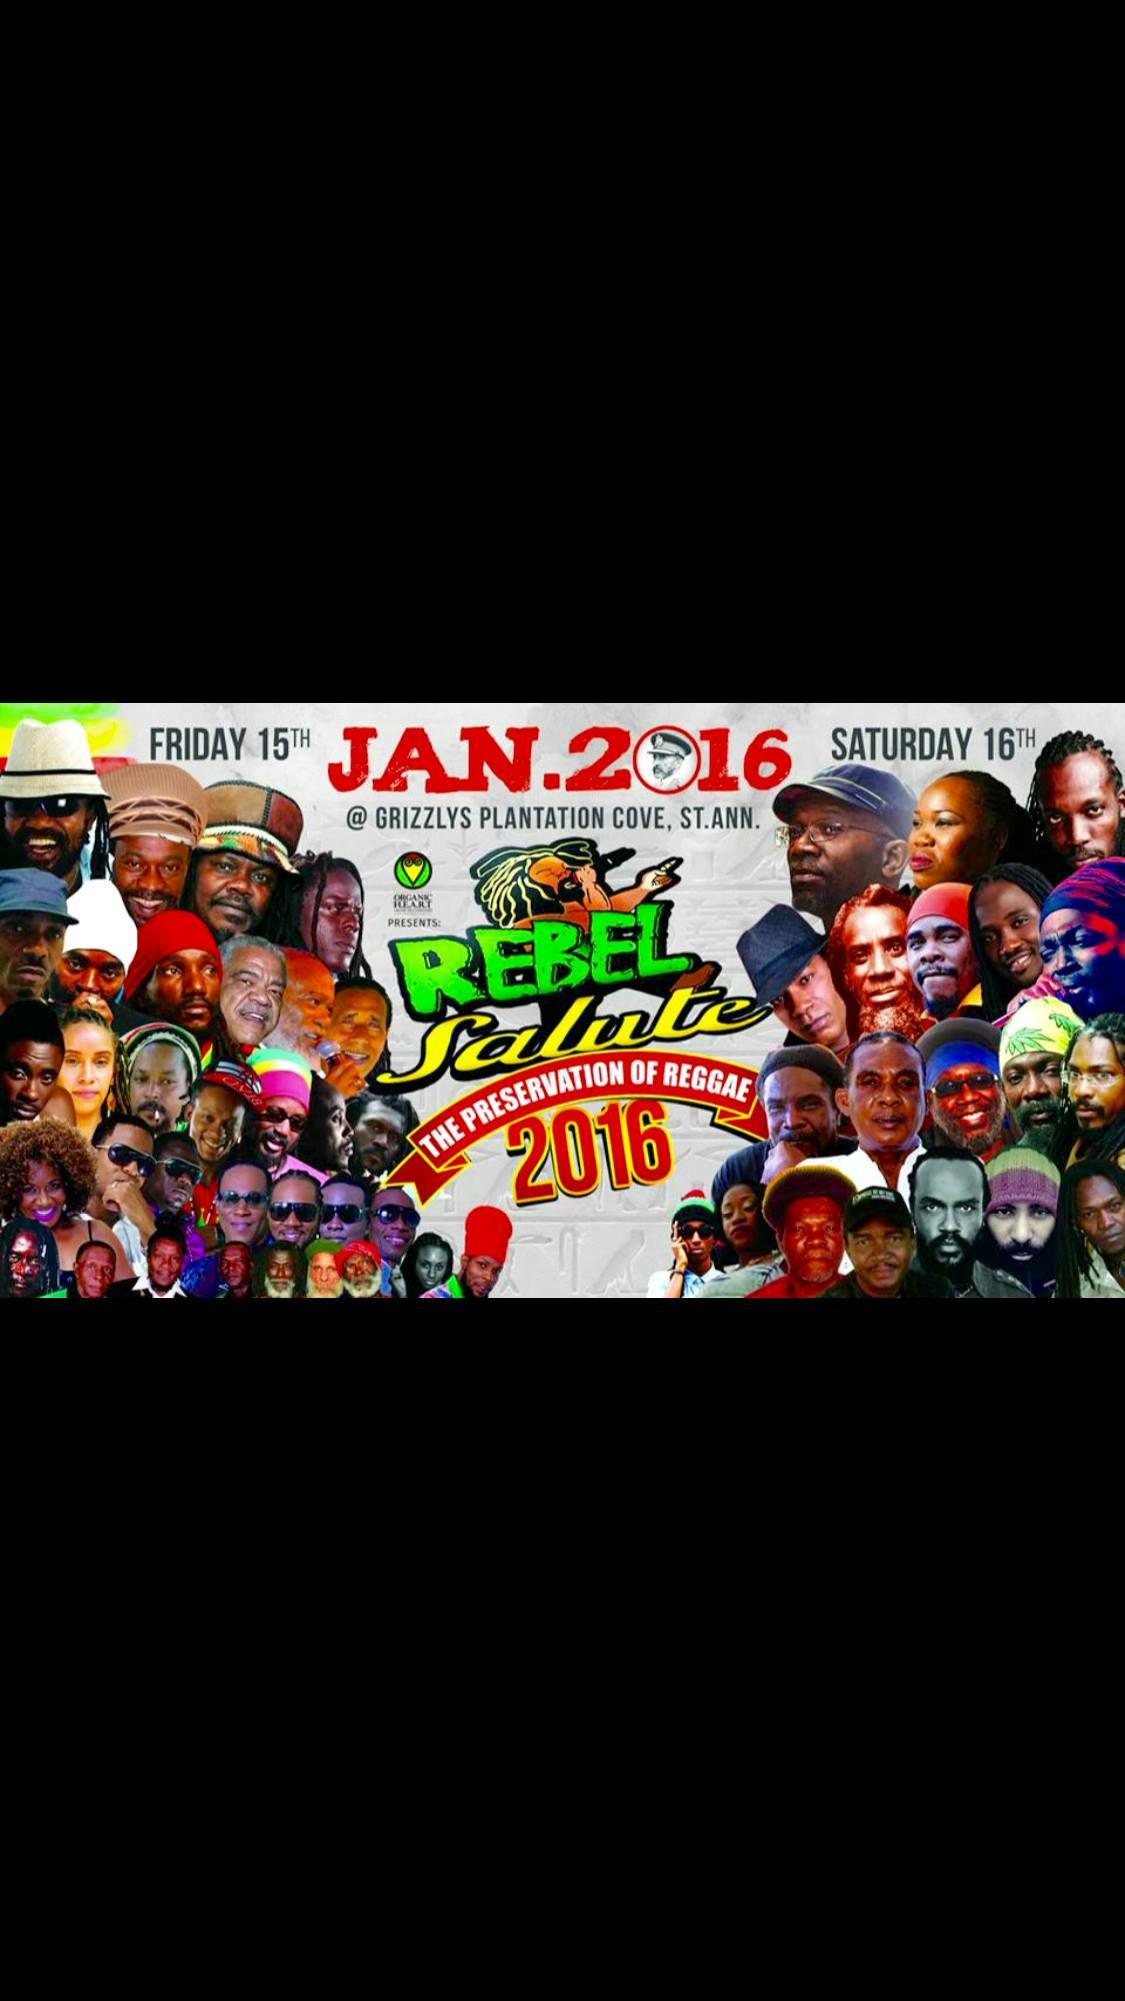 REBELSALUTE 2016 WILL BE A BLAST FROM THE PAST    WHO SEY